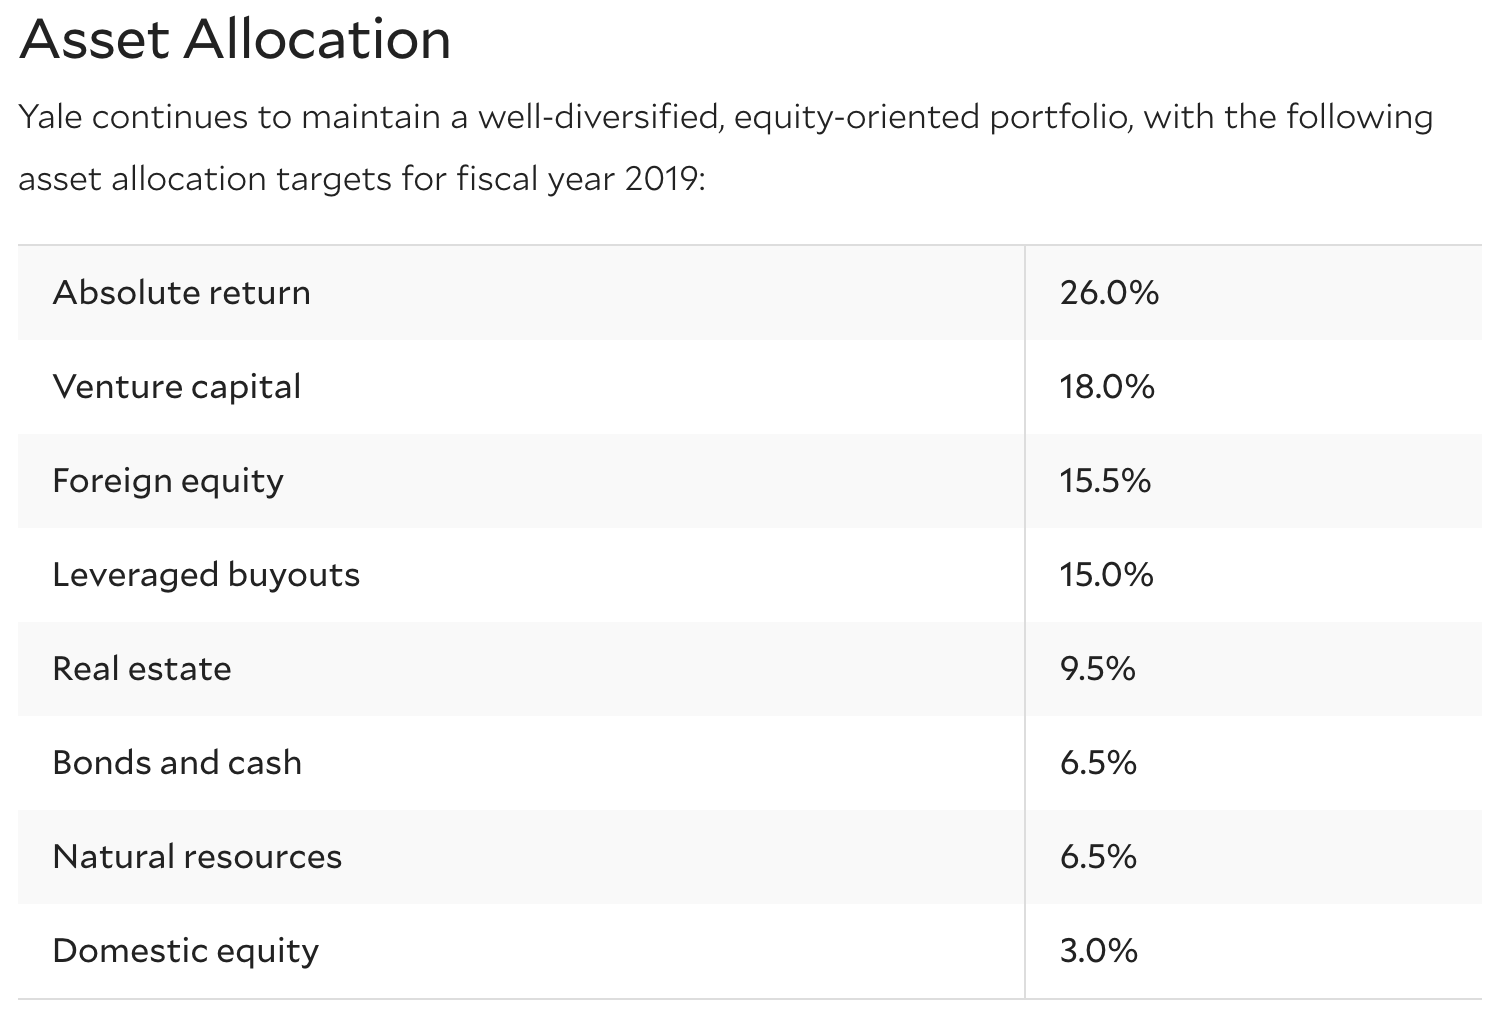 Yale endowment asset allocation 2019